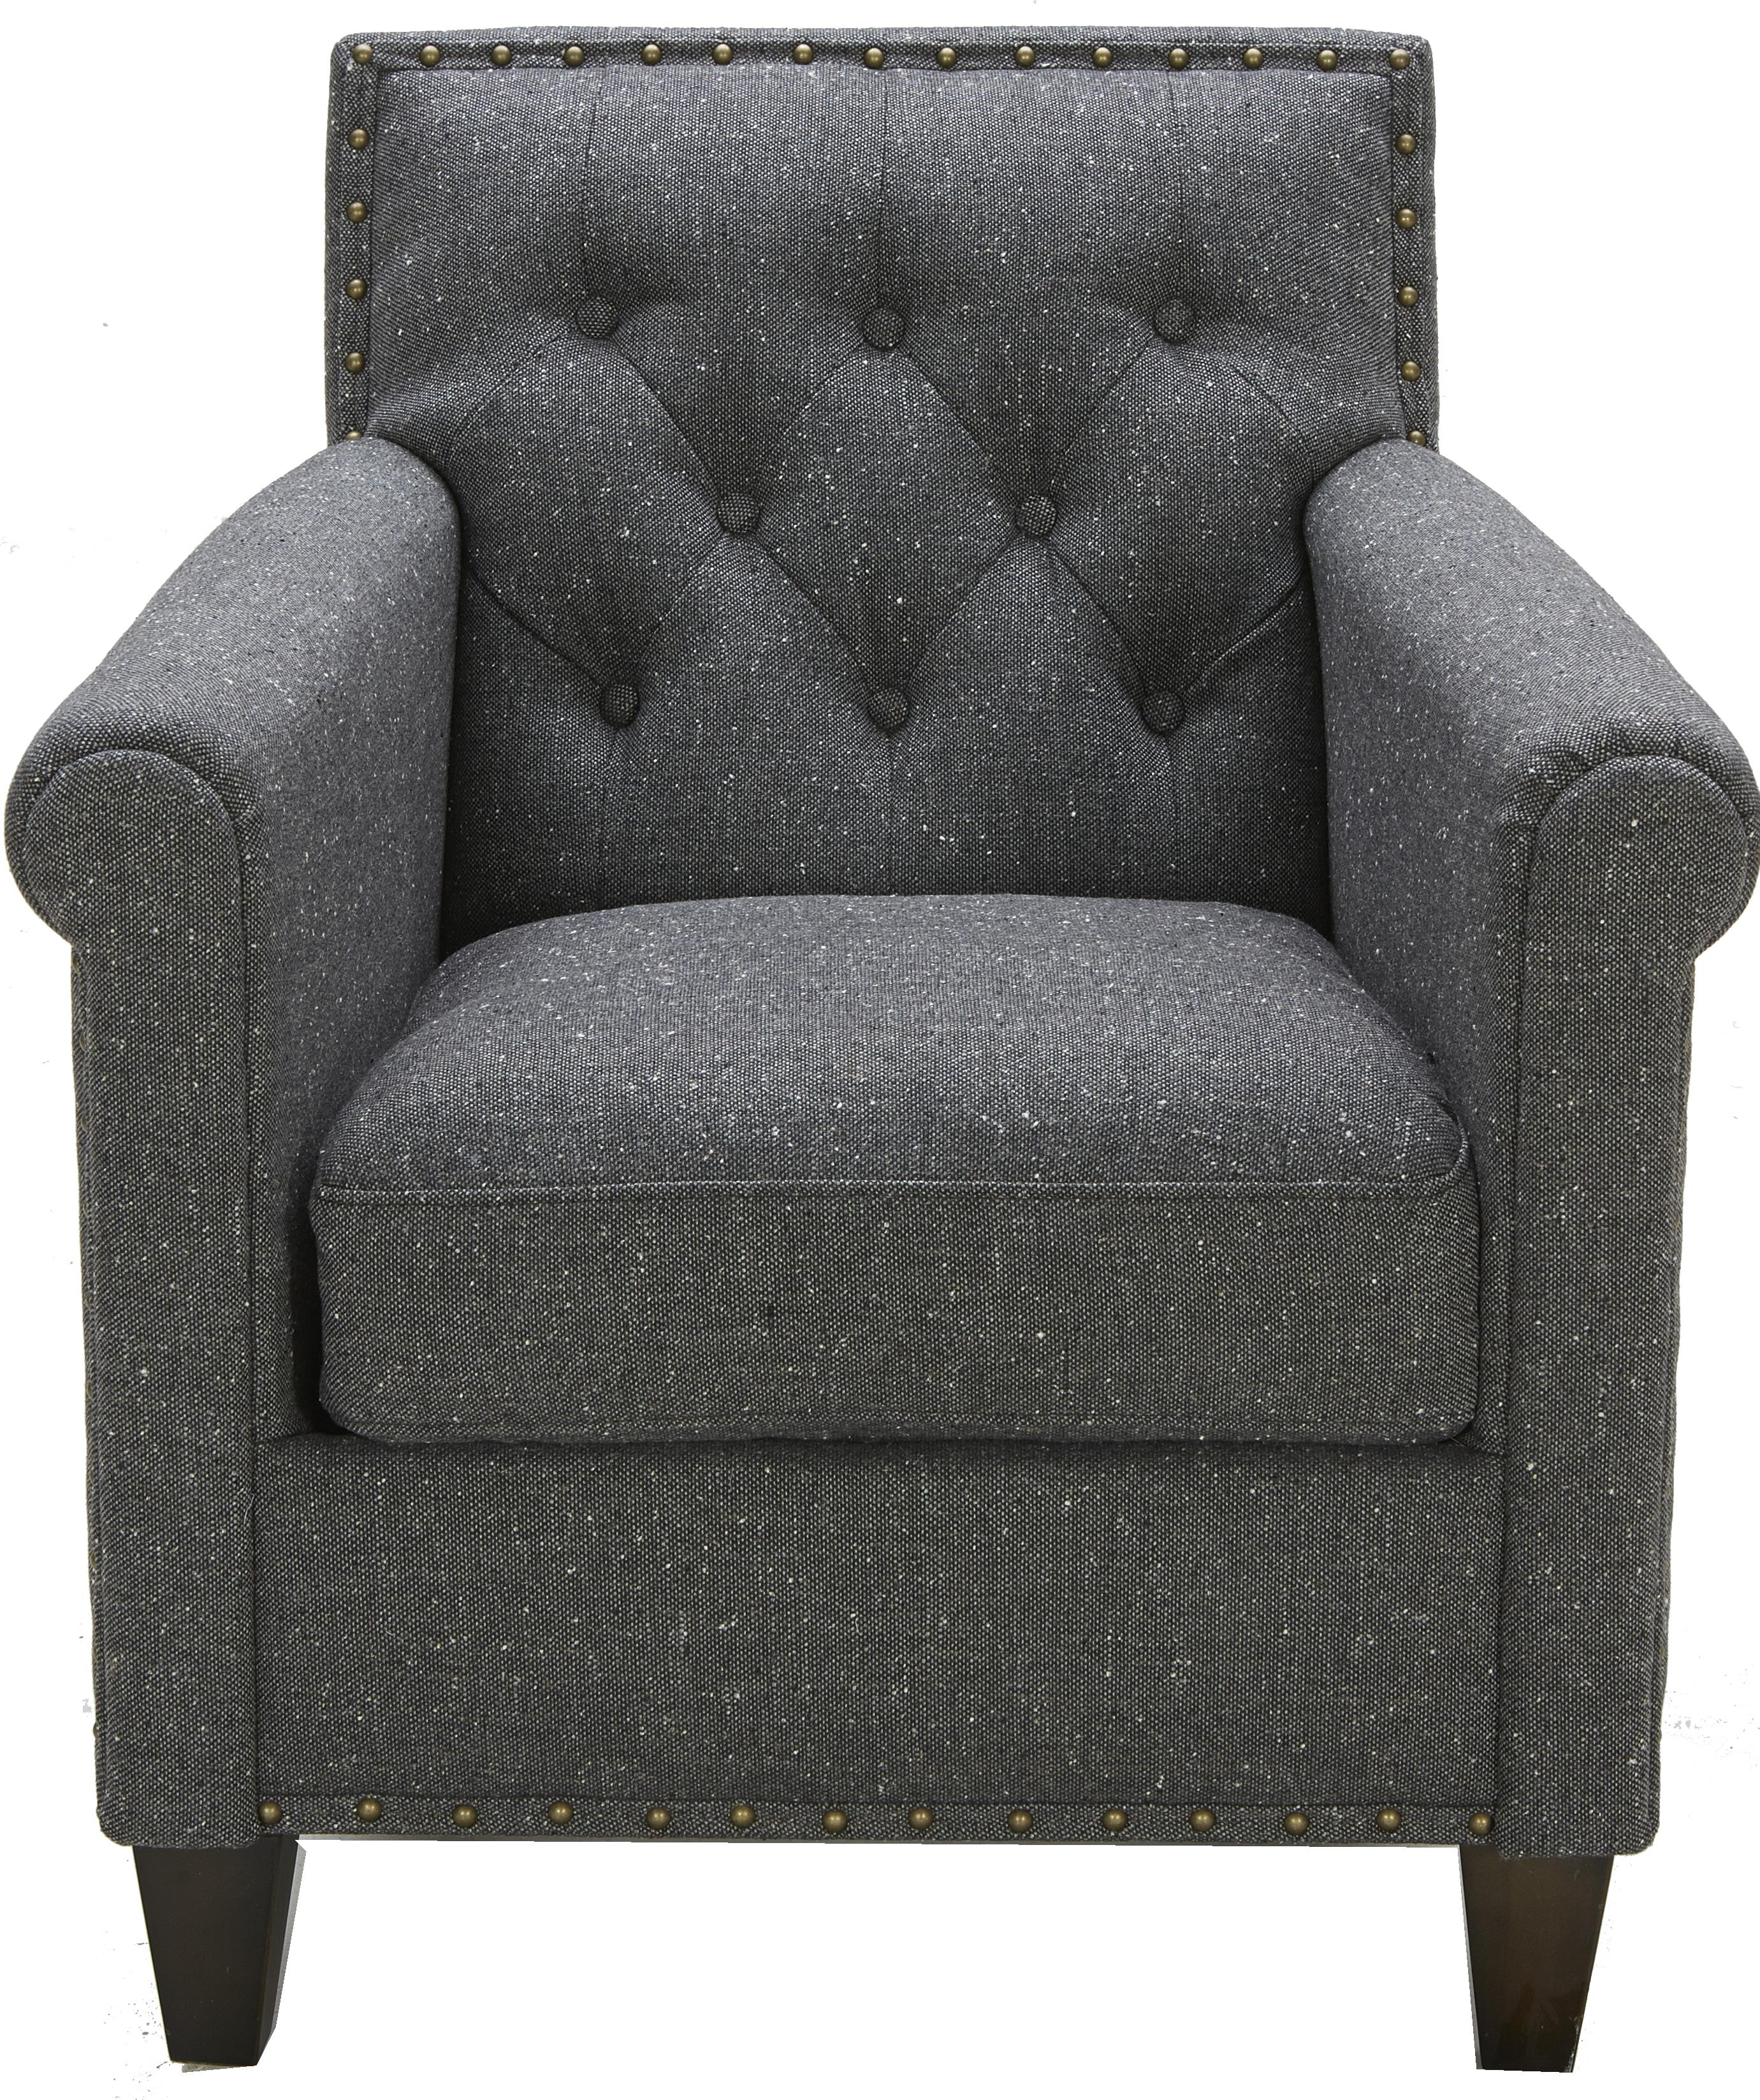 Urban Evolution Tristan Tufted Chair - Item Number: A-655-KD337